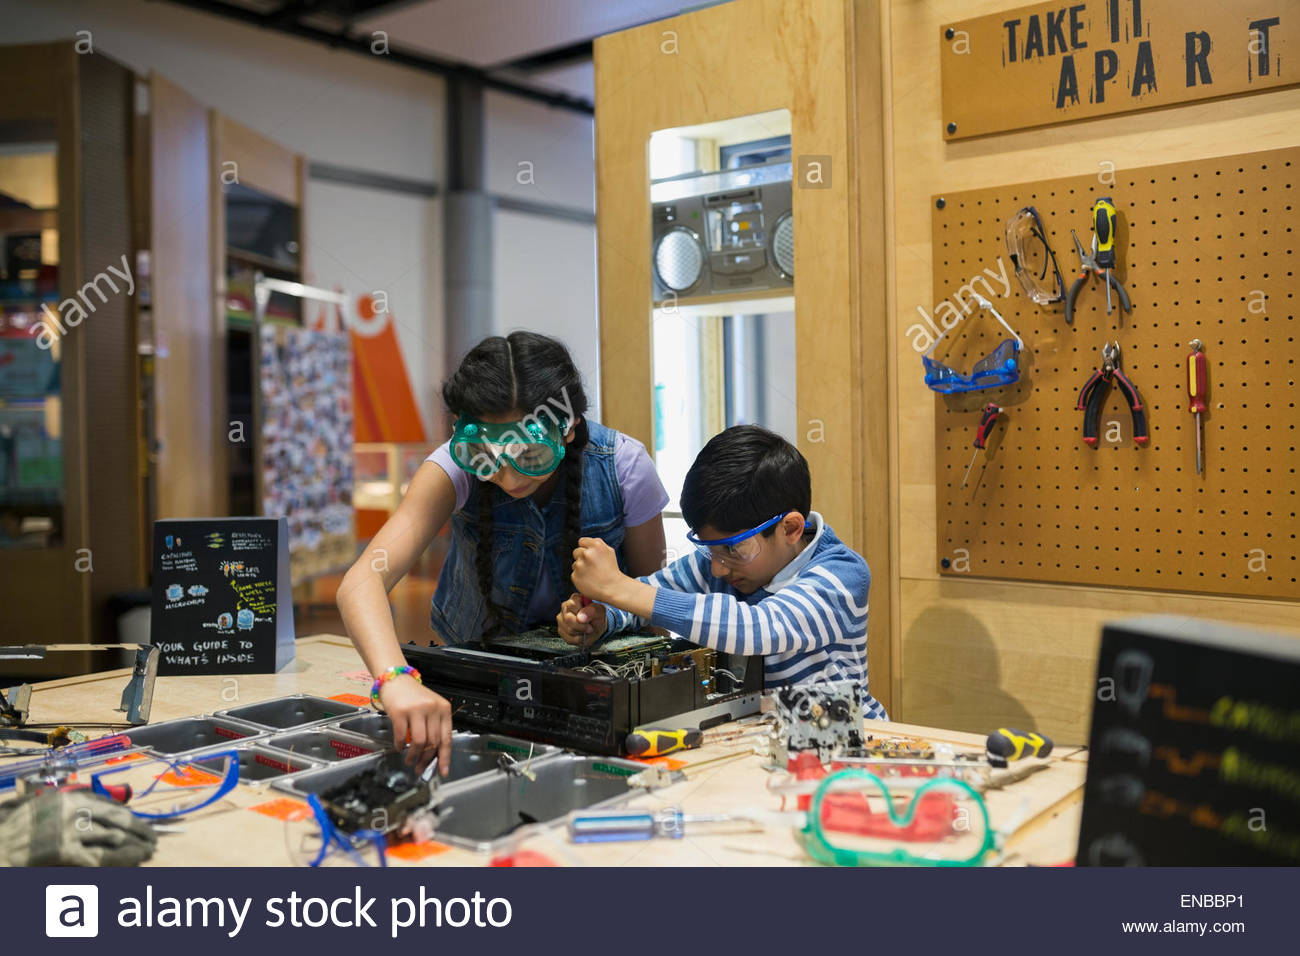 Brother and sister assembling electronics at science center - Stock Image